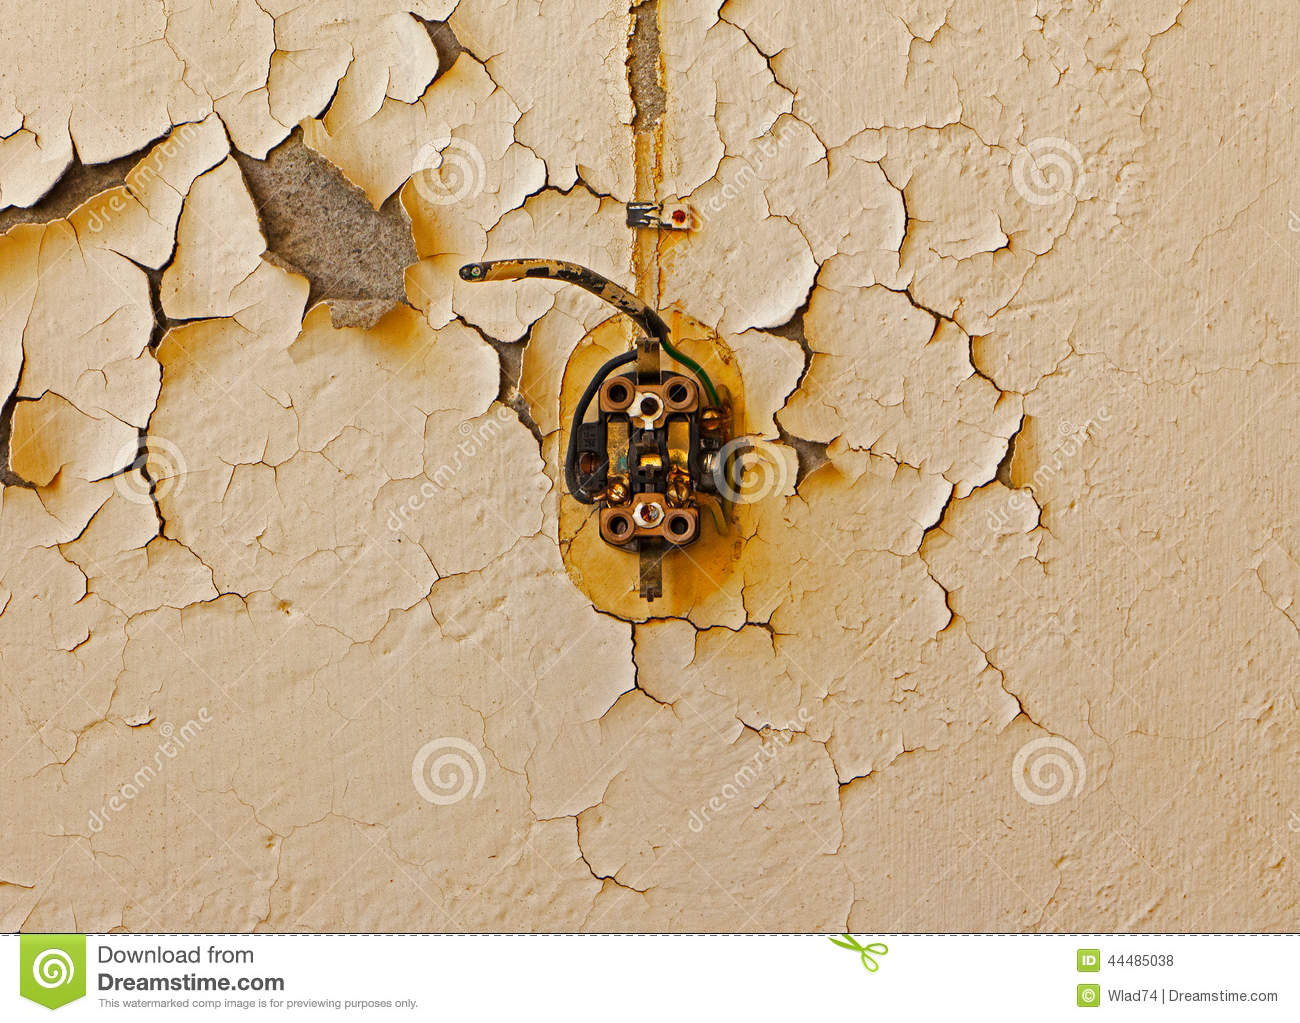 Cable Wall Outlet : Old electrical outlet and cable on decrepit wall stock photo image